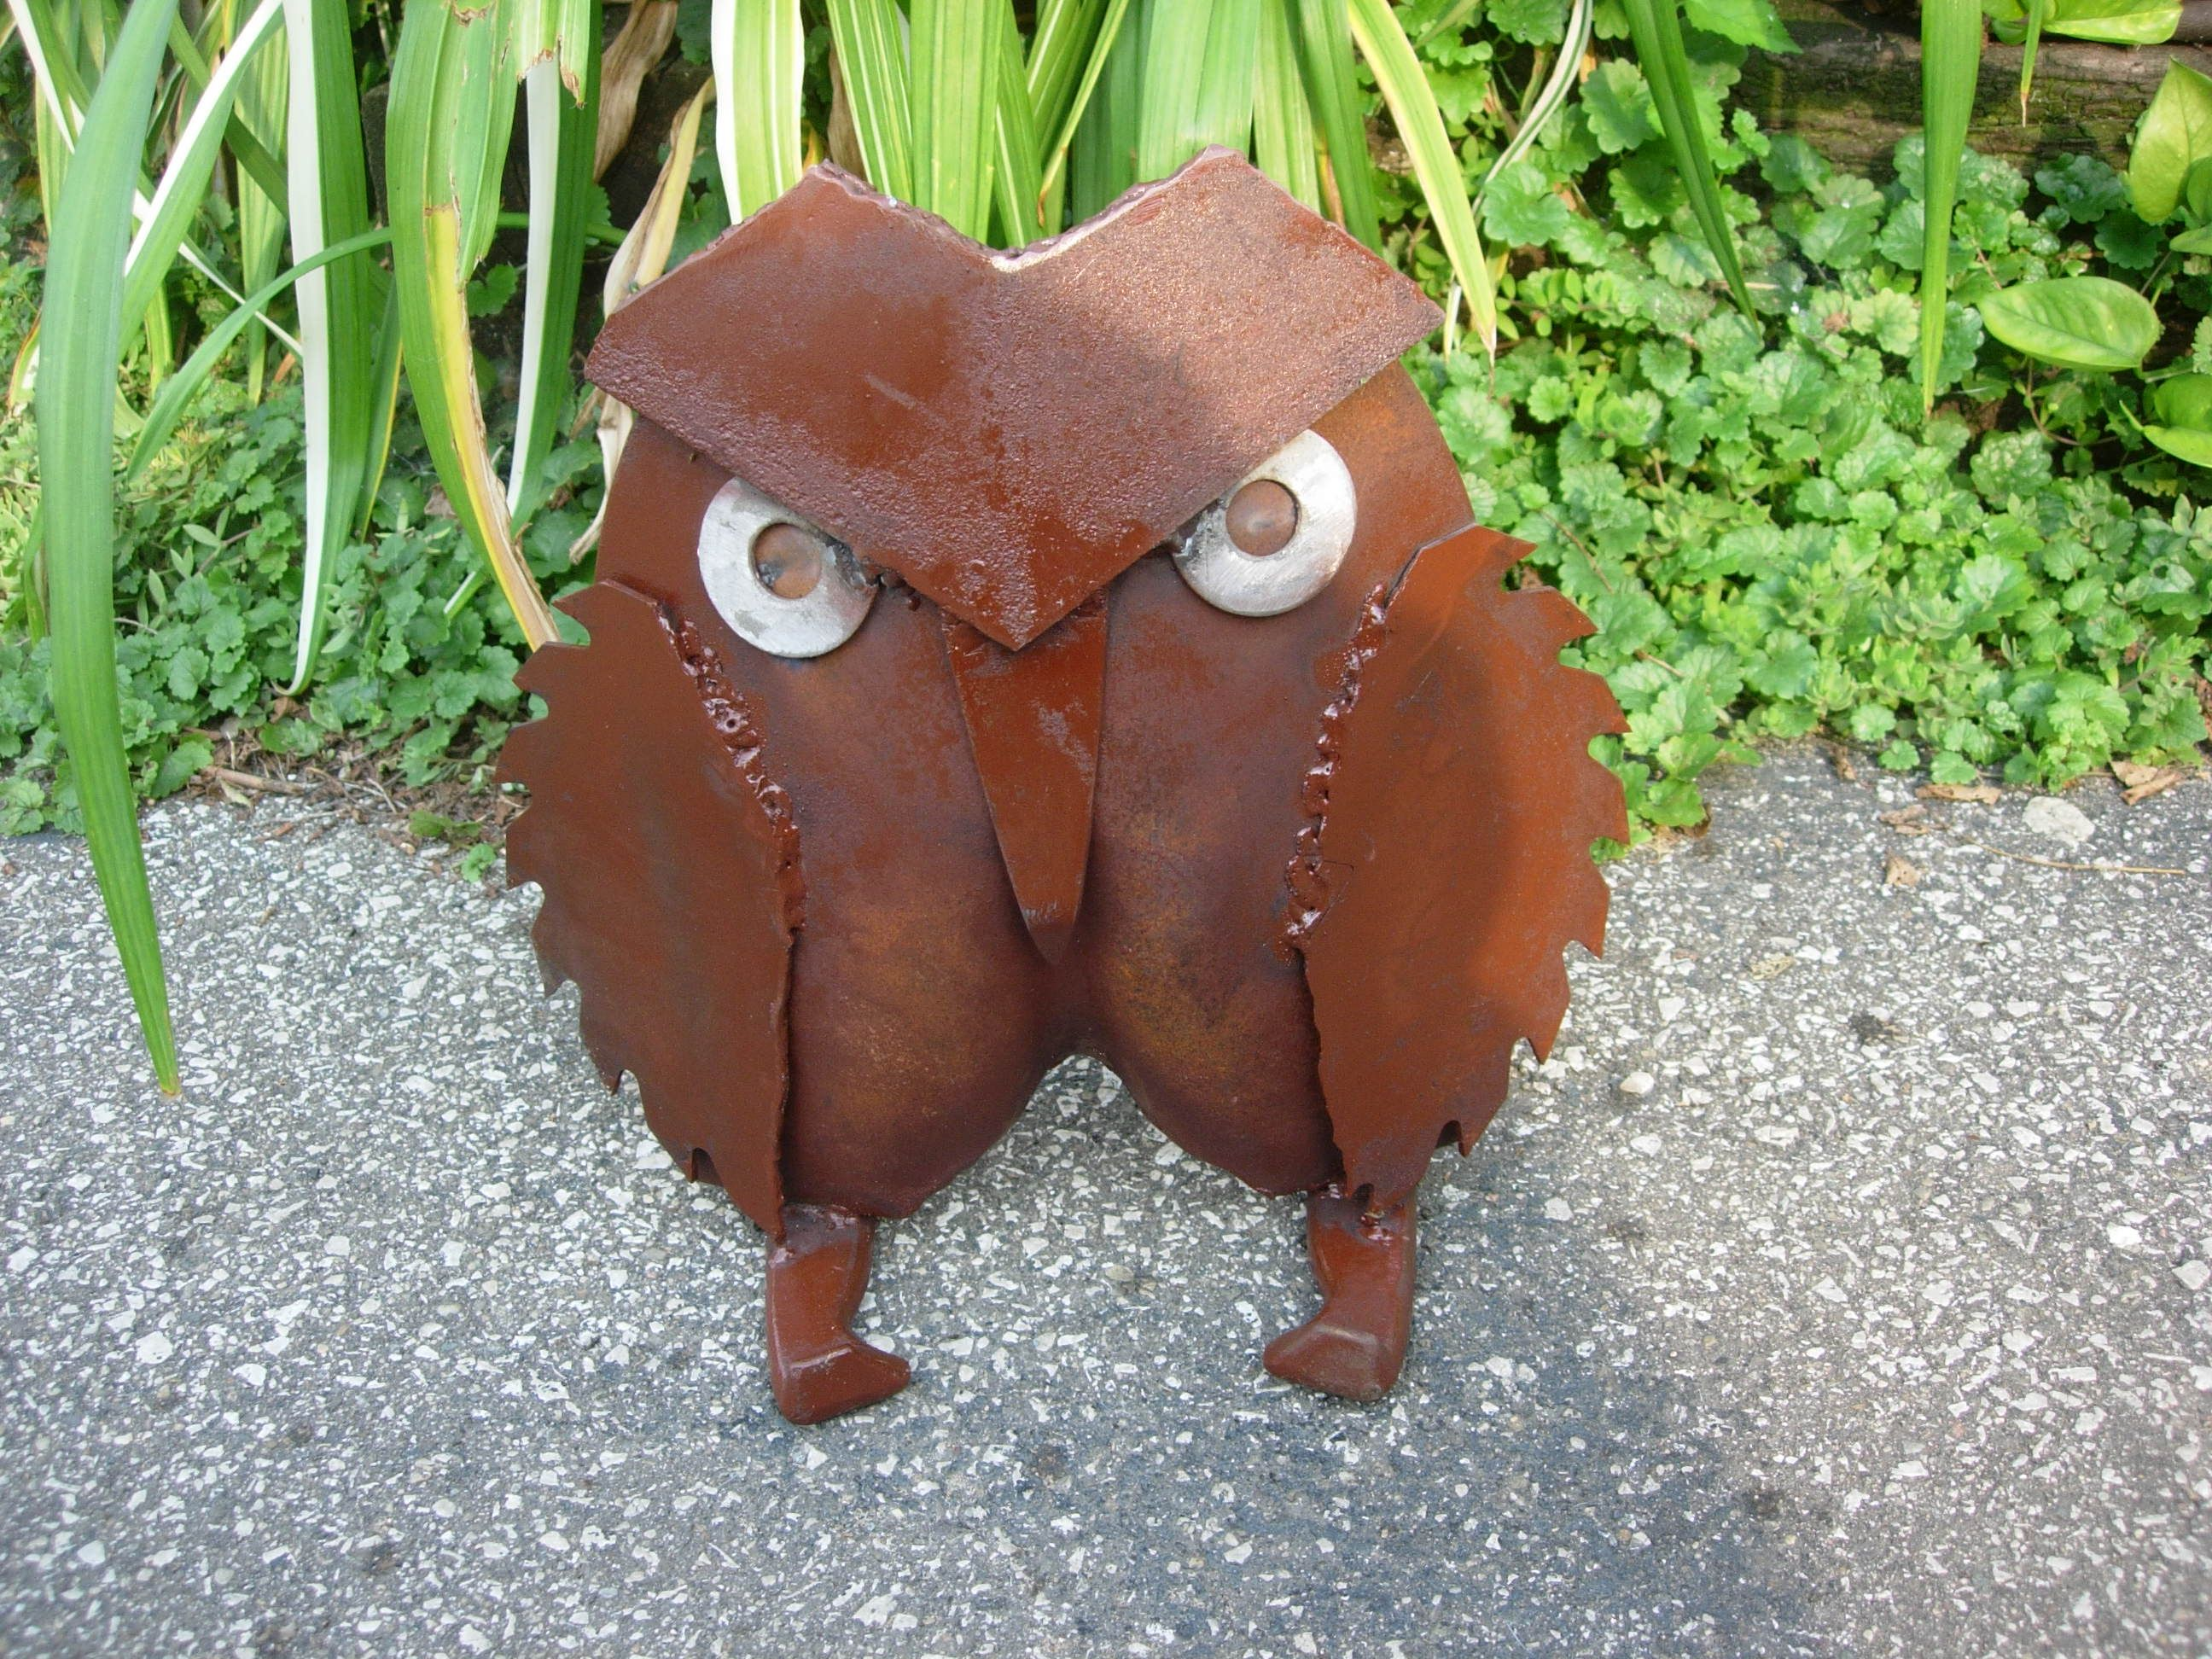 Owl lawn ornaments - Shovel Owl Made From Horse Shoe Circular Saw Blades